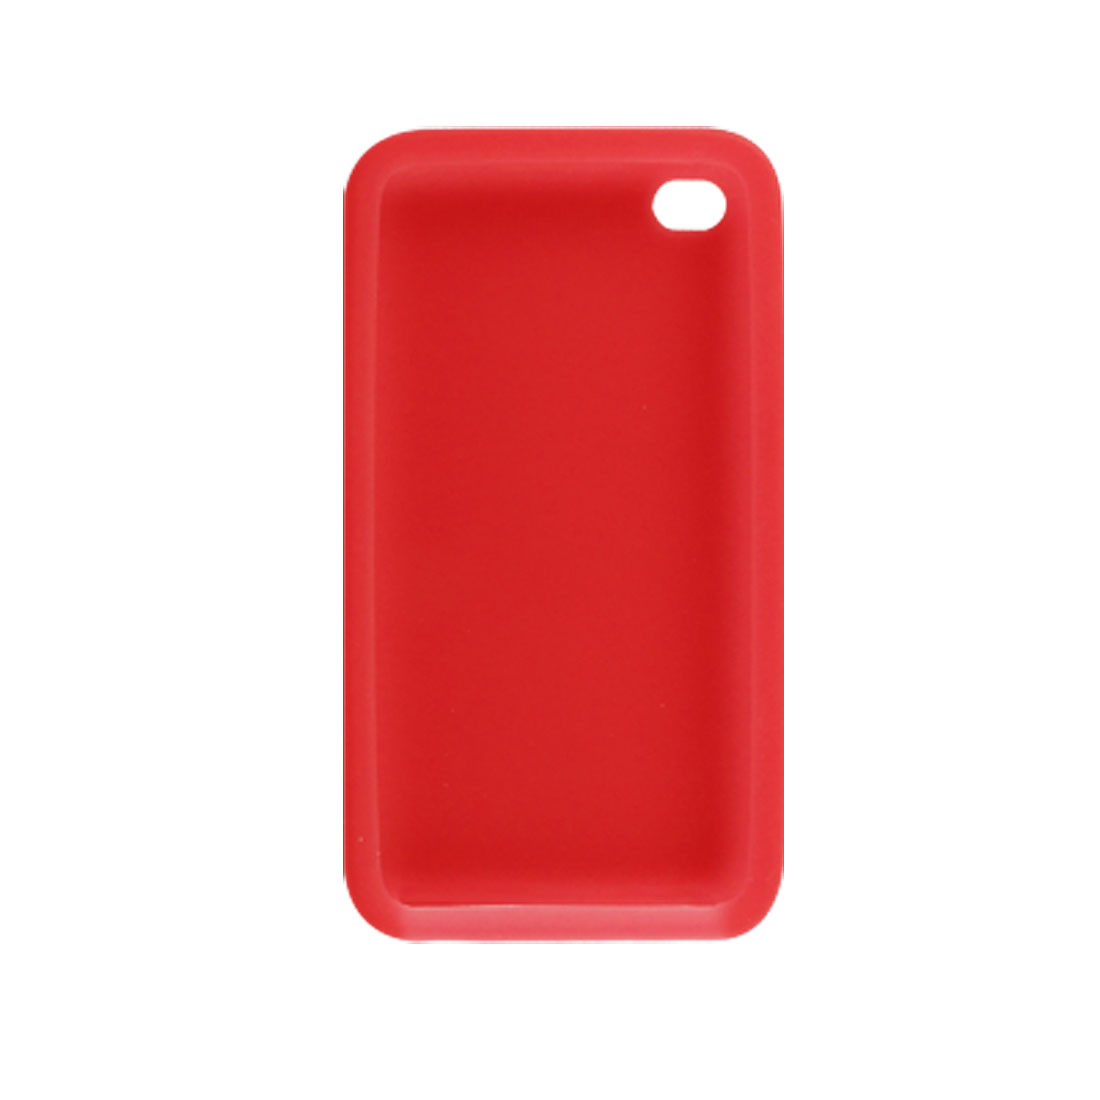 Protective Soft Skin Red Case for Apple iPod Touch 4G